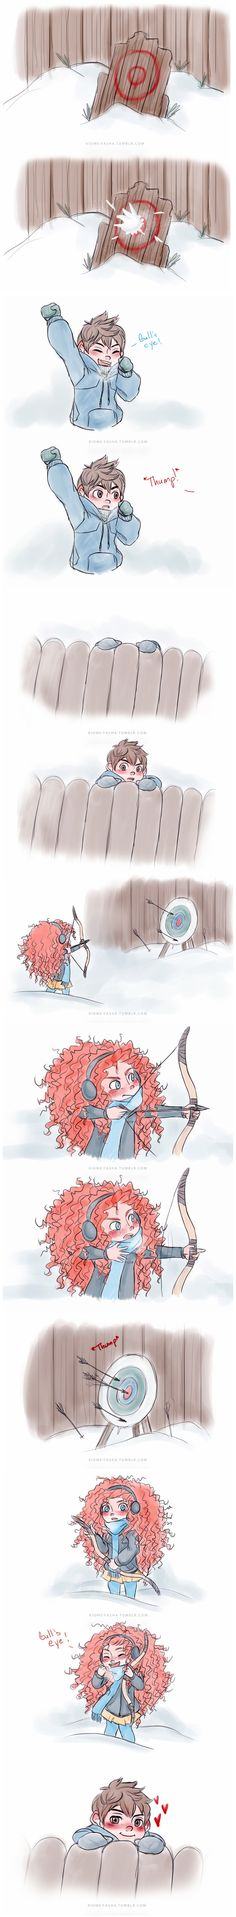 I don't ship Jack and Merida at all but this is cute.